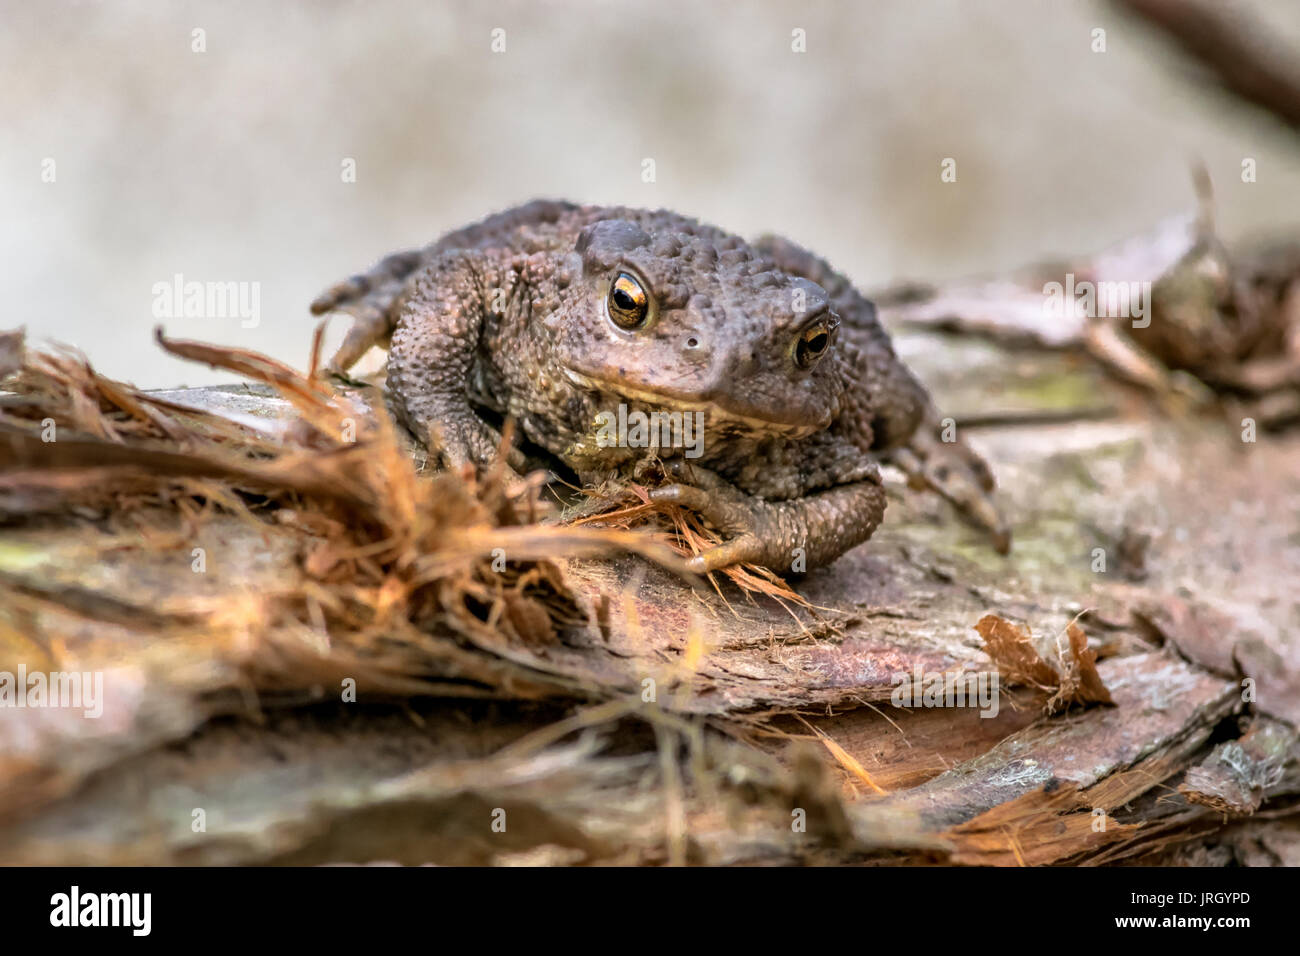 Amphibian, Common British Toad / Frog Stock Photo